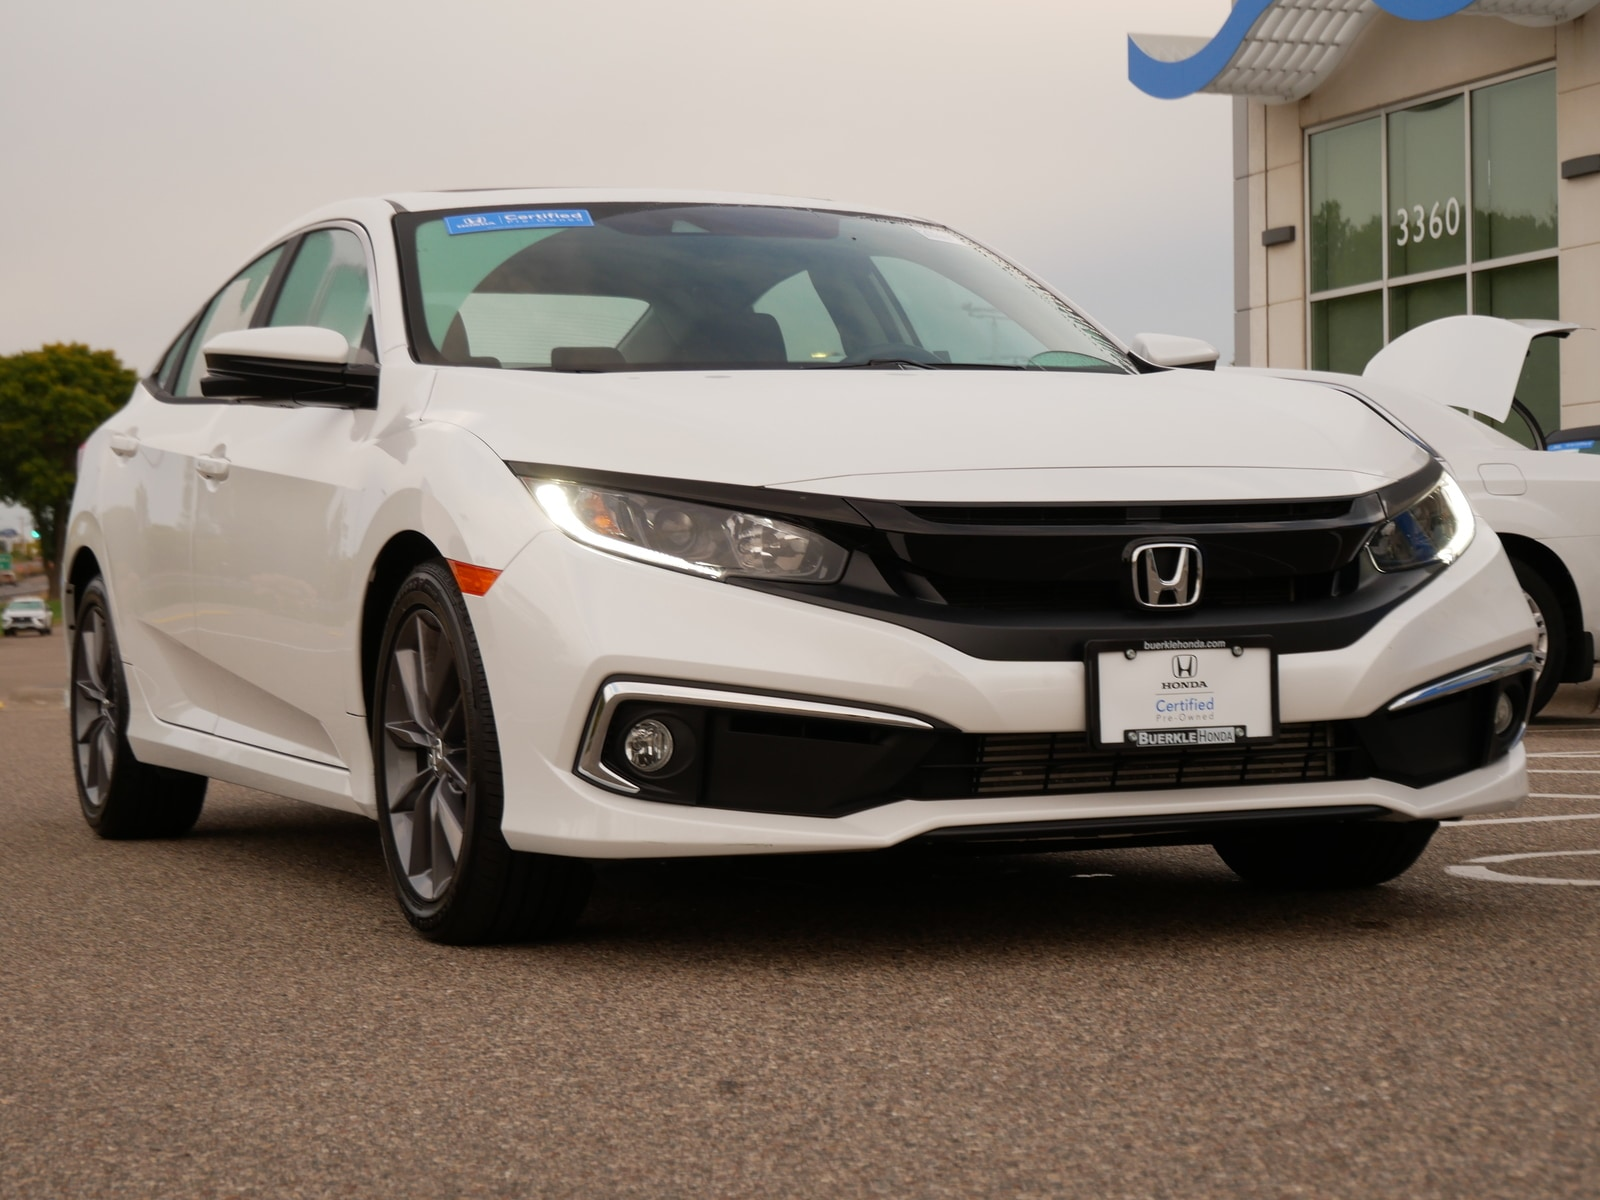 Used 2020 Honda Civic EX with VIN 19XFC1F38LE022011 for sale in Saint Paul, Minnesota